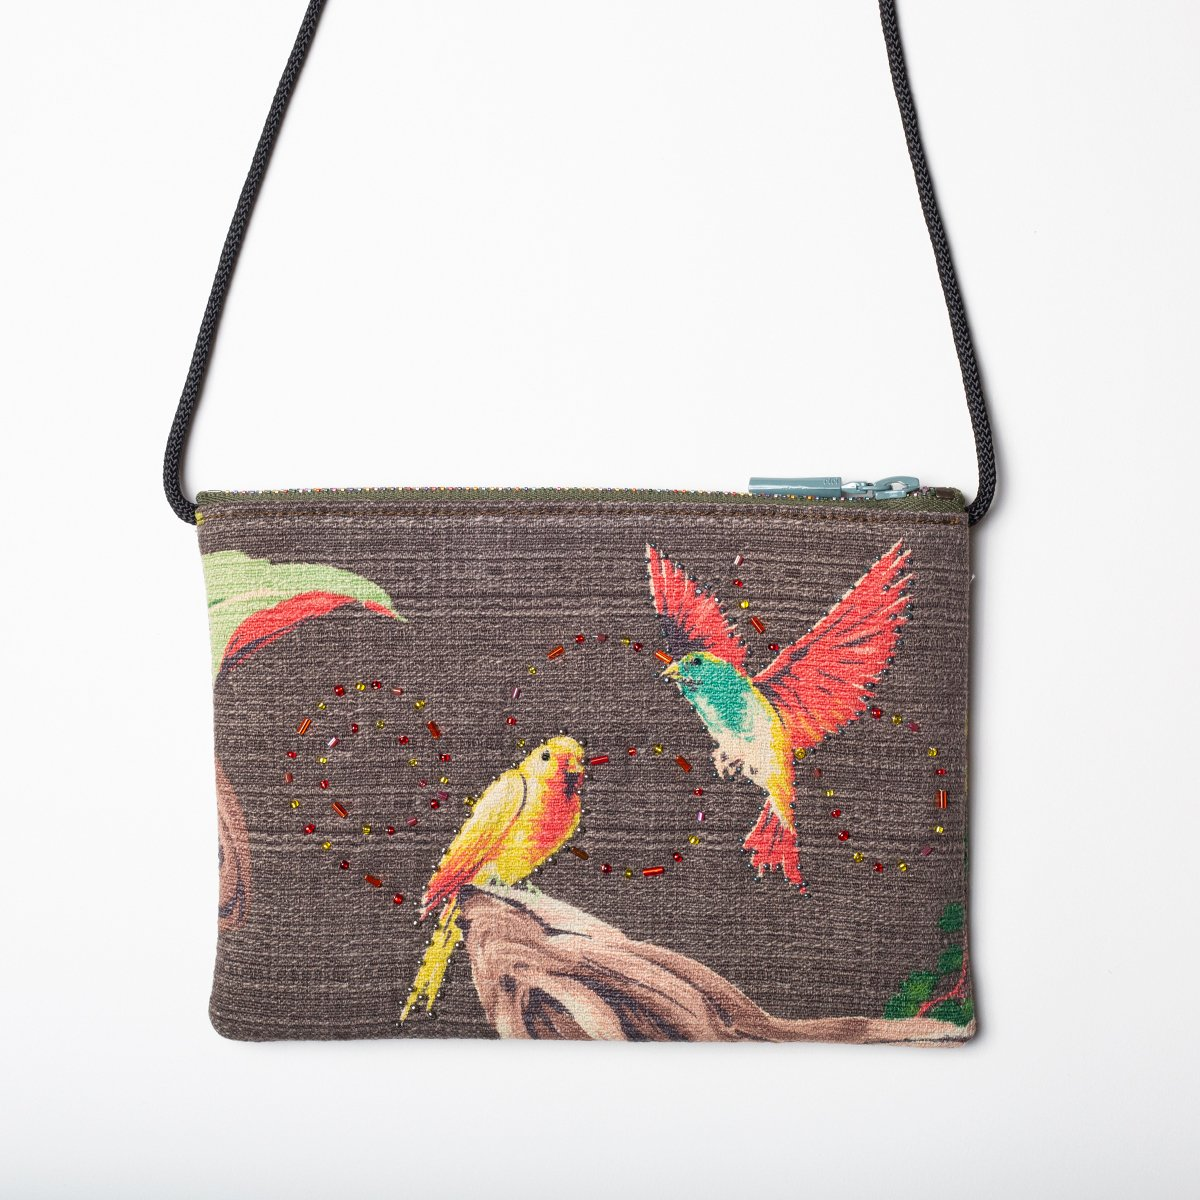 The Opera Bag – Bird Motif on Mocha